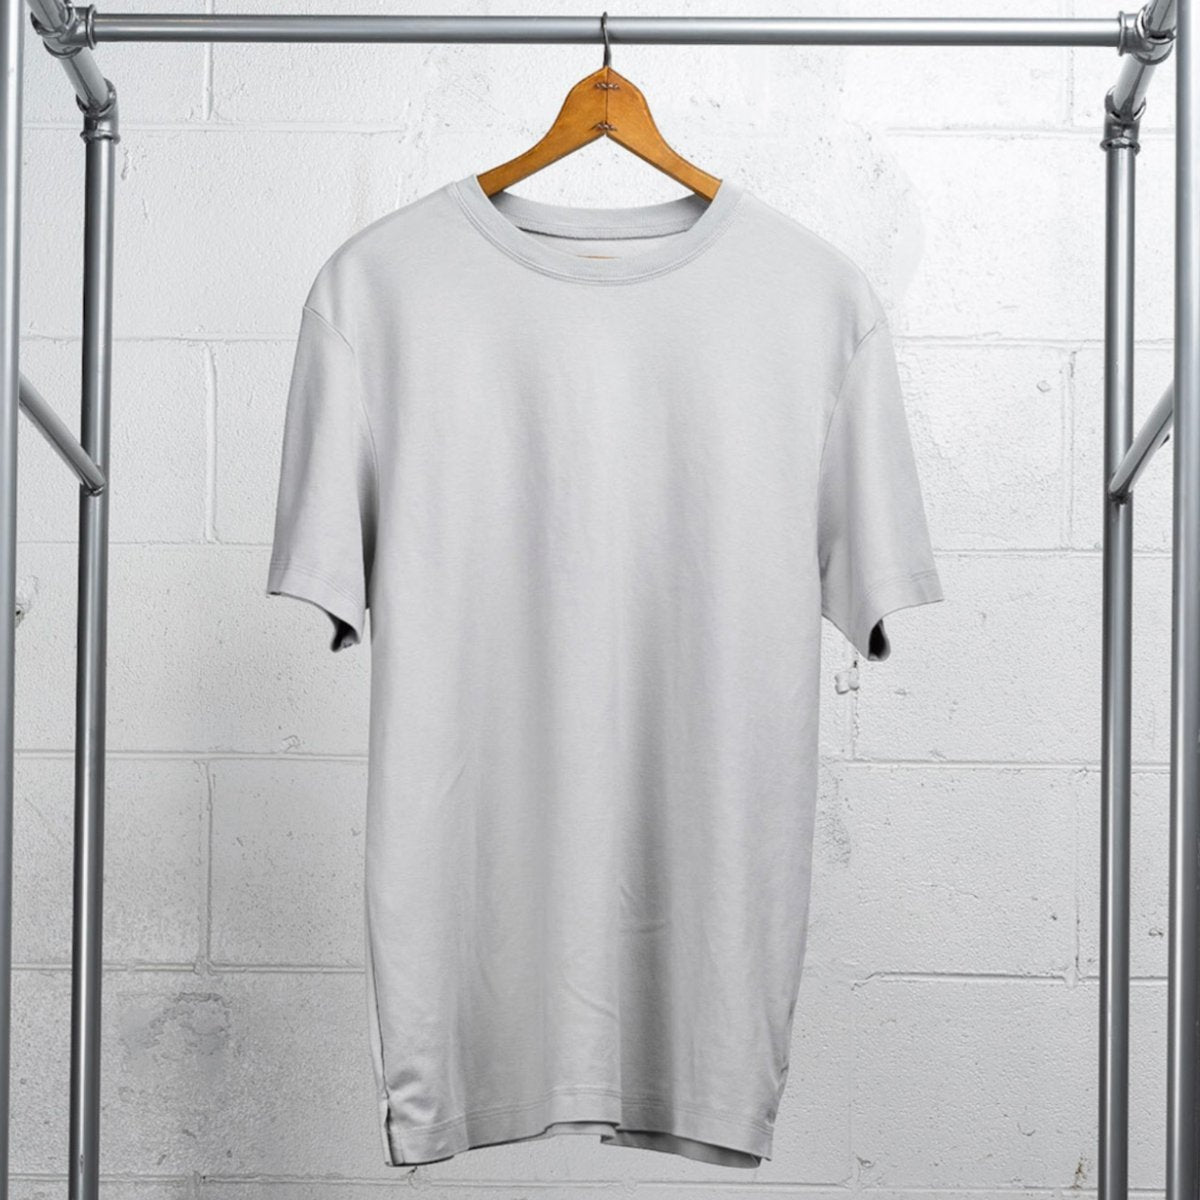 #1: The Most Comfortable Grey T - Classic